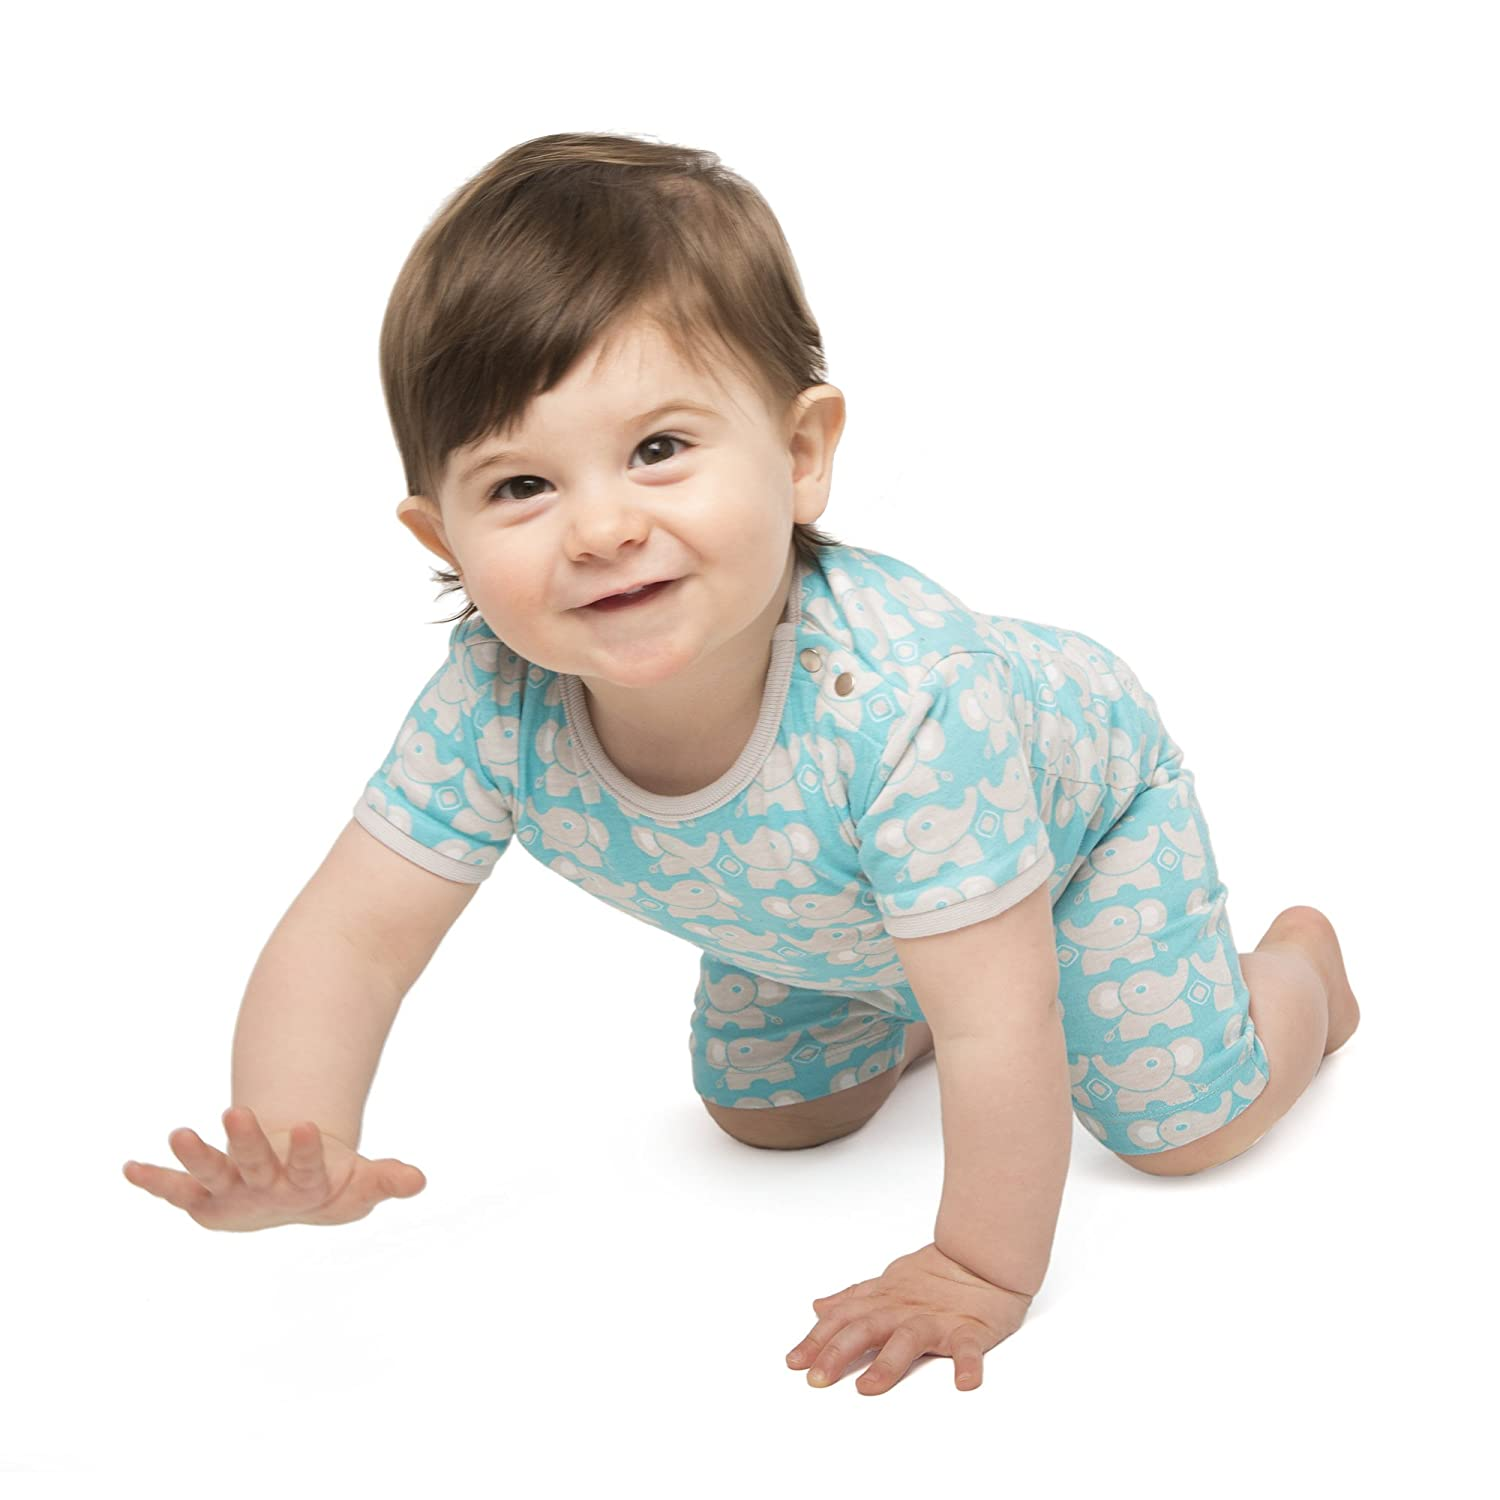 baby deedee Short Sleeve Cotton 2 Piece Tee Shirt/Shorts and Pajama Play Set, Teal Elephant, 12-18 Months